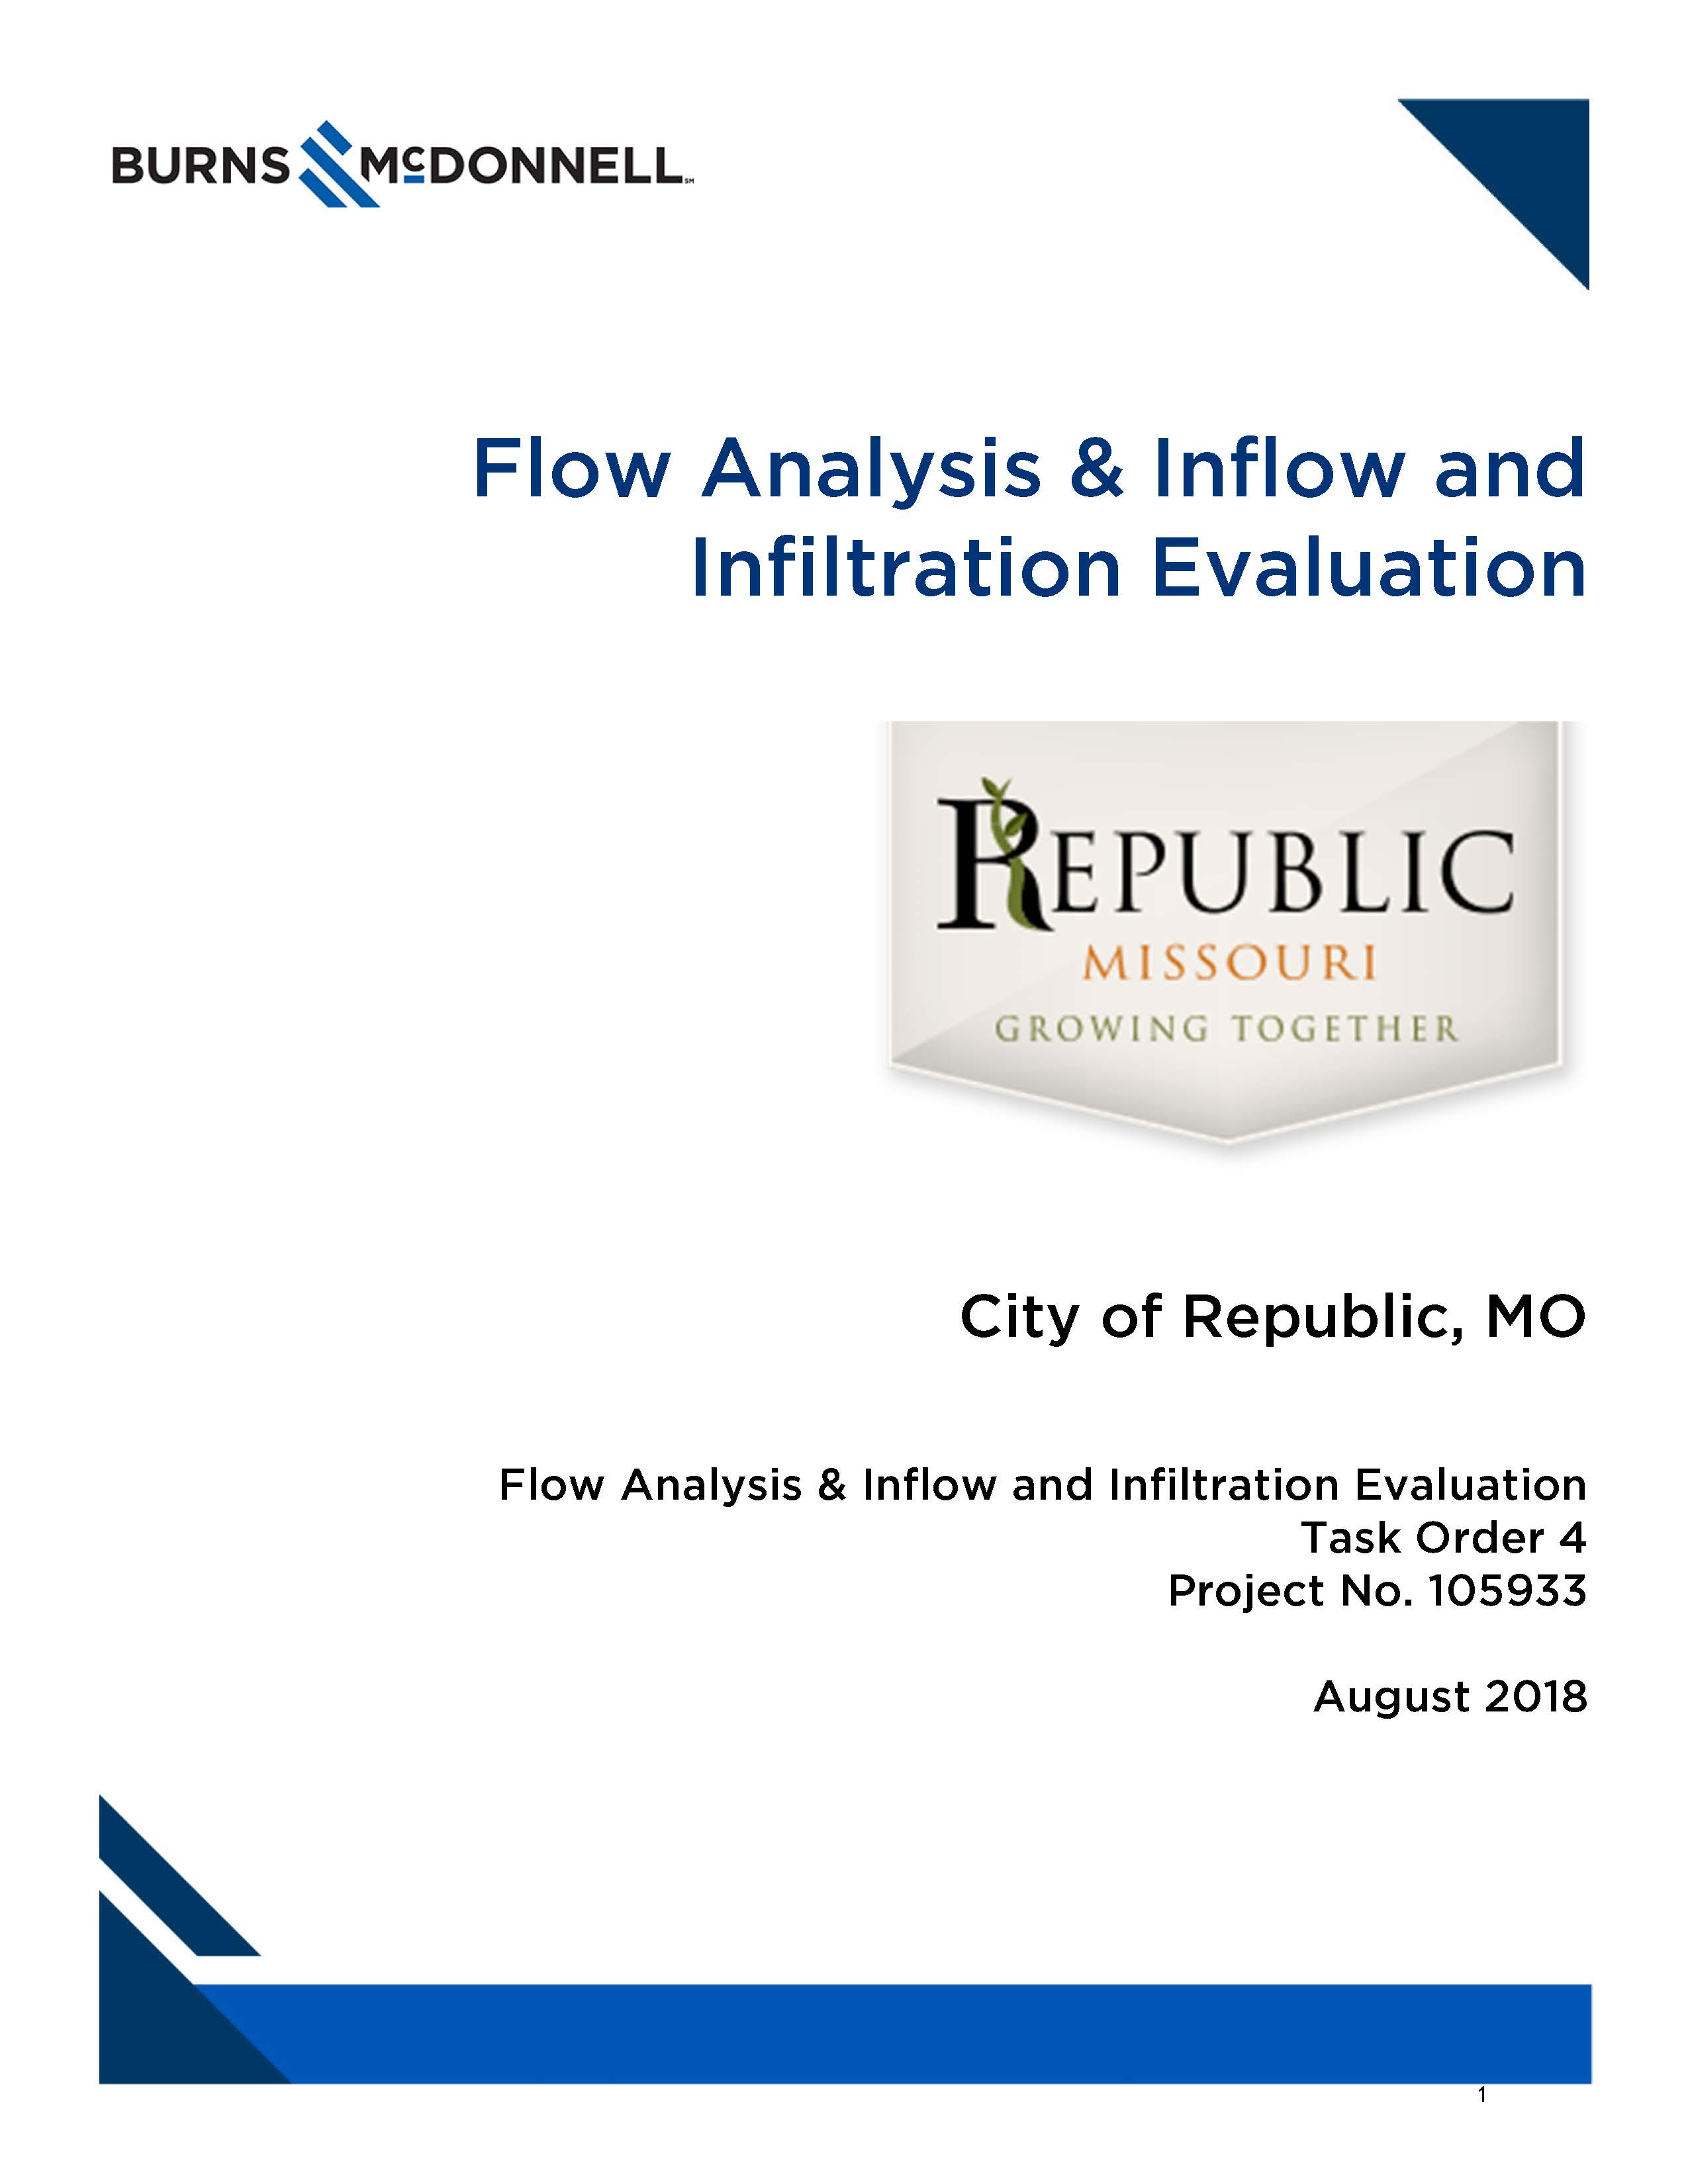 Title - Republic Flow Analysis Opens in new window